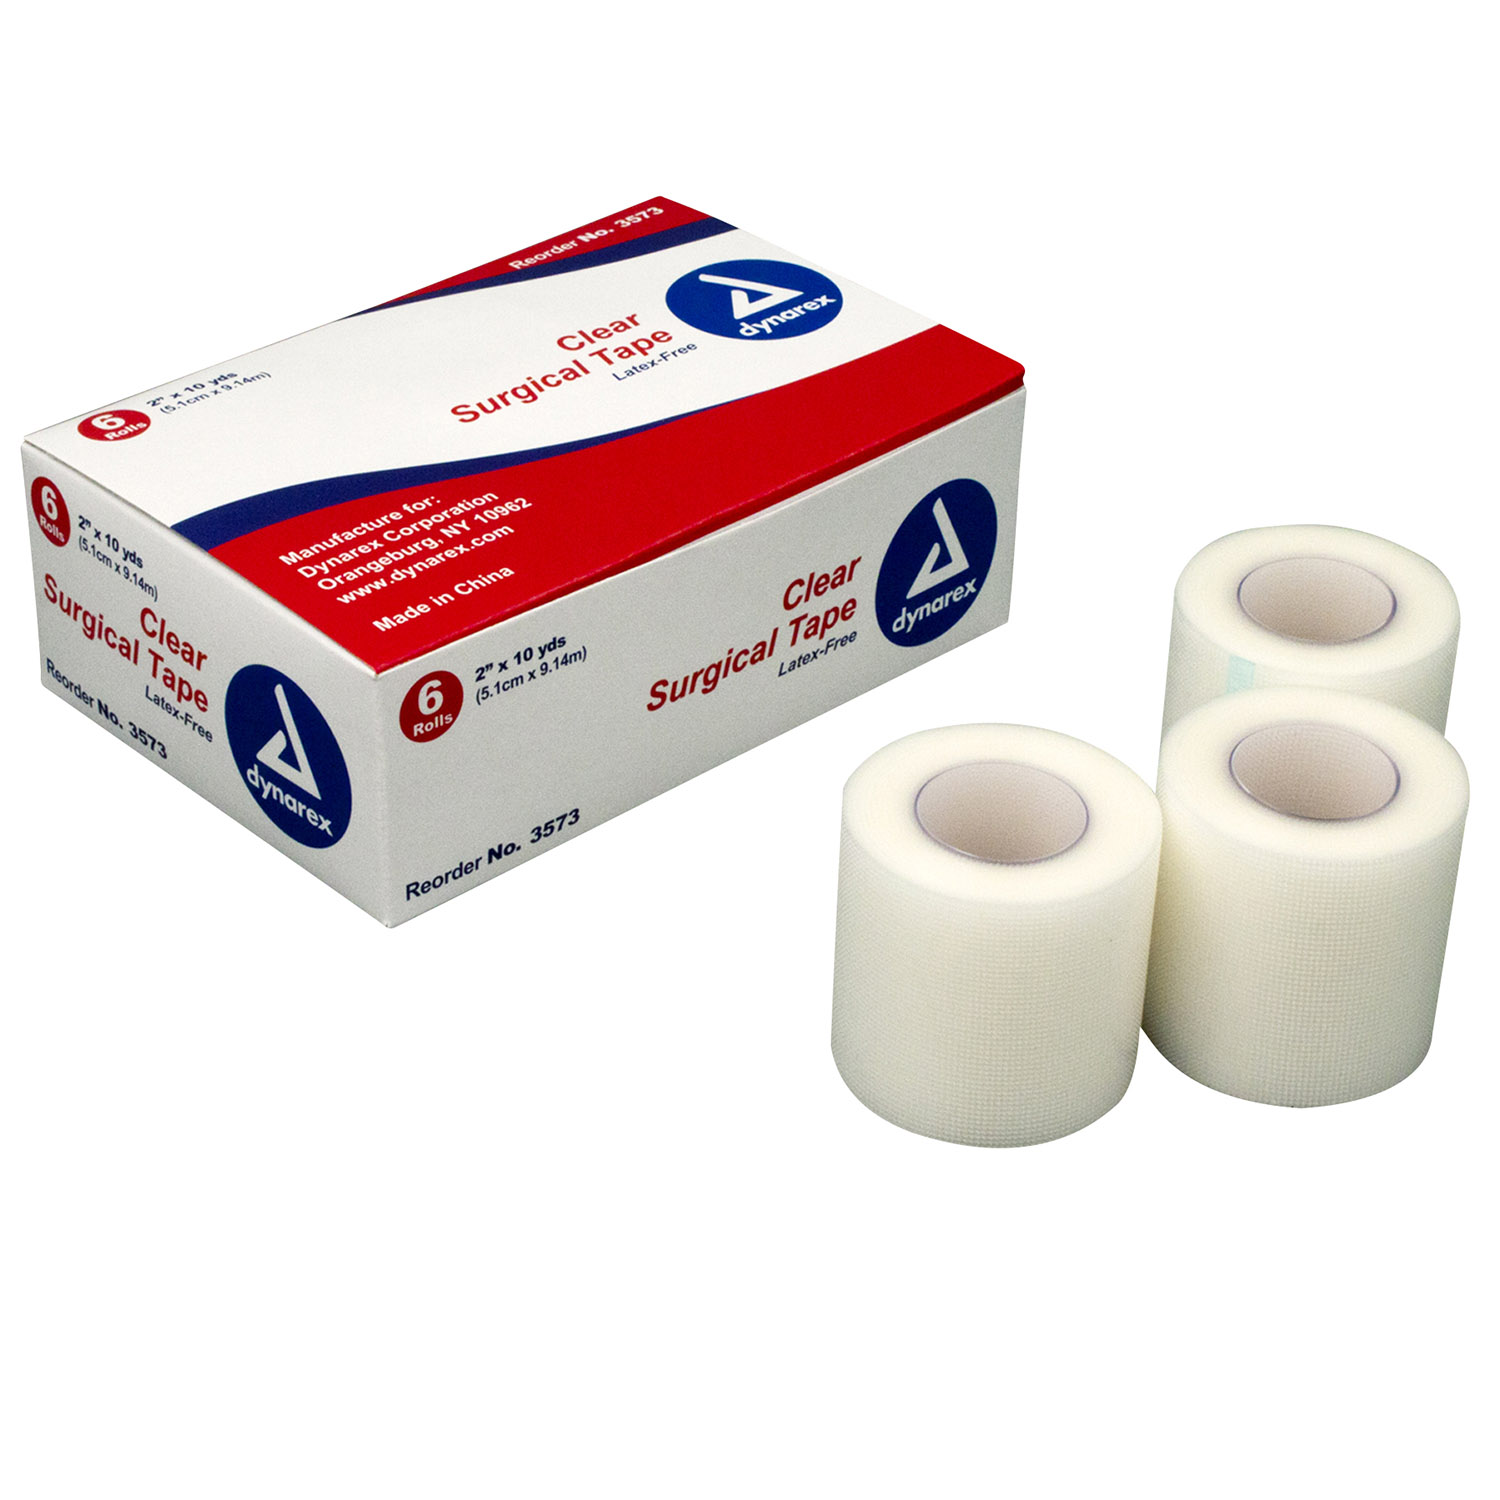 "Dynarex 2"" Transparent Surgical Tape (6 Pack)"